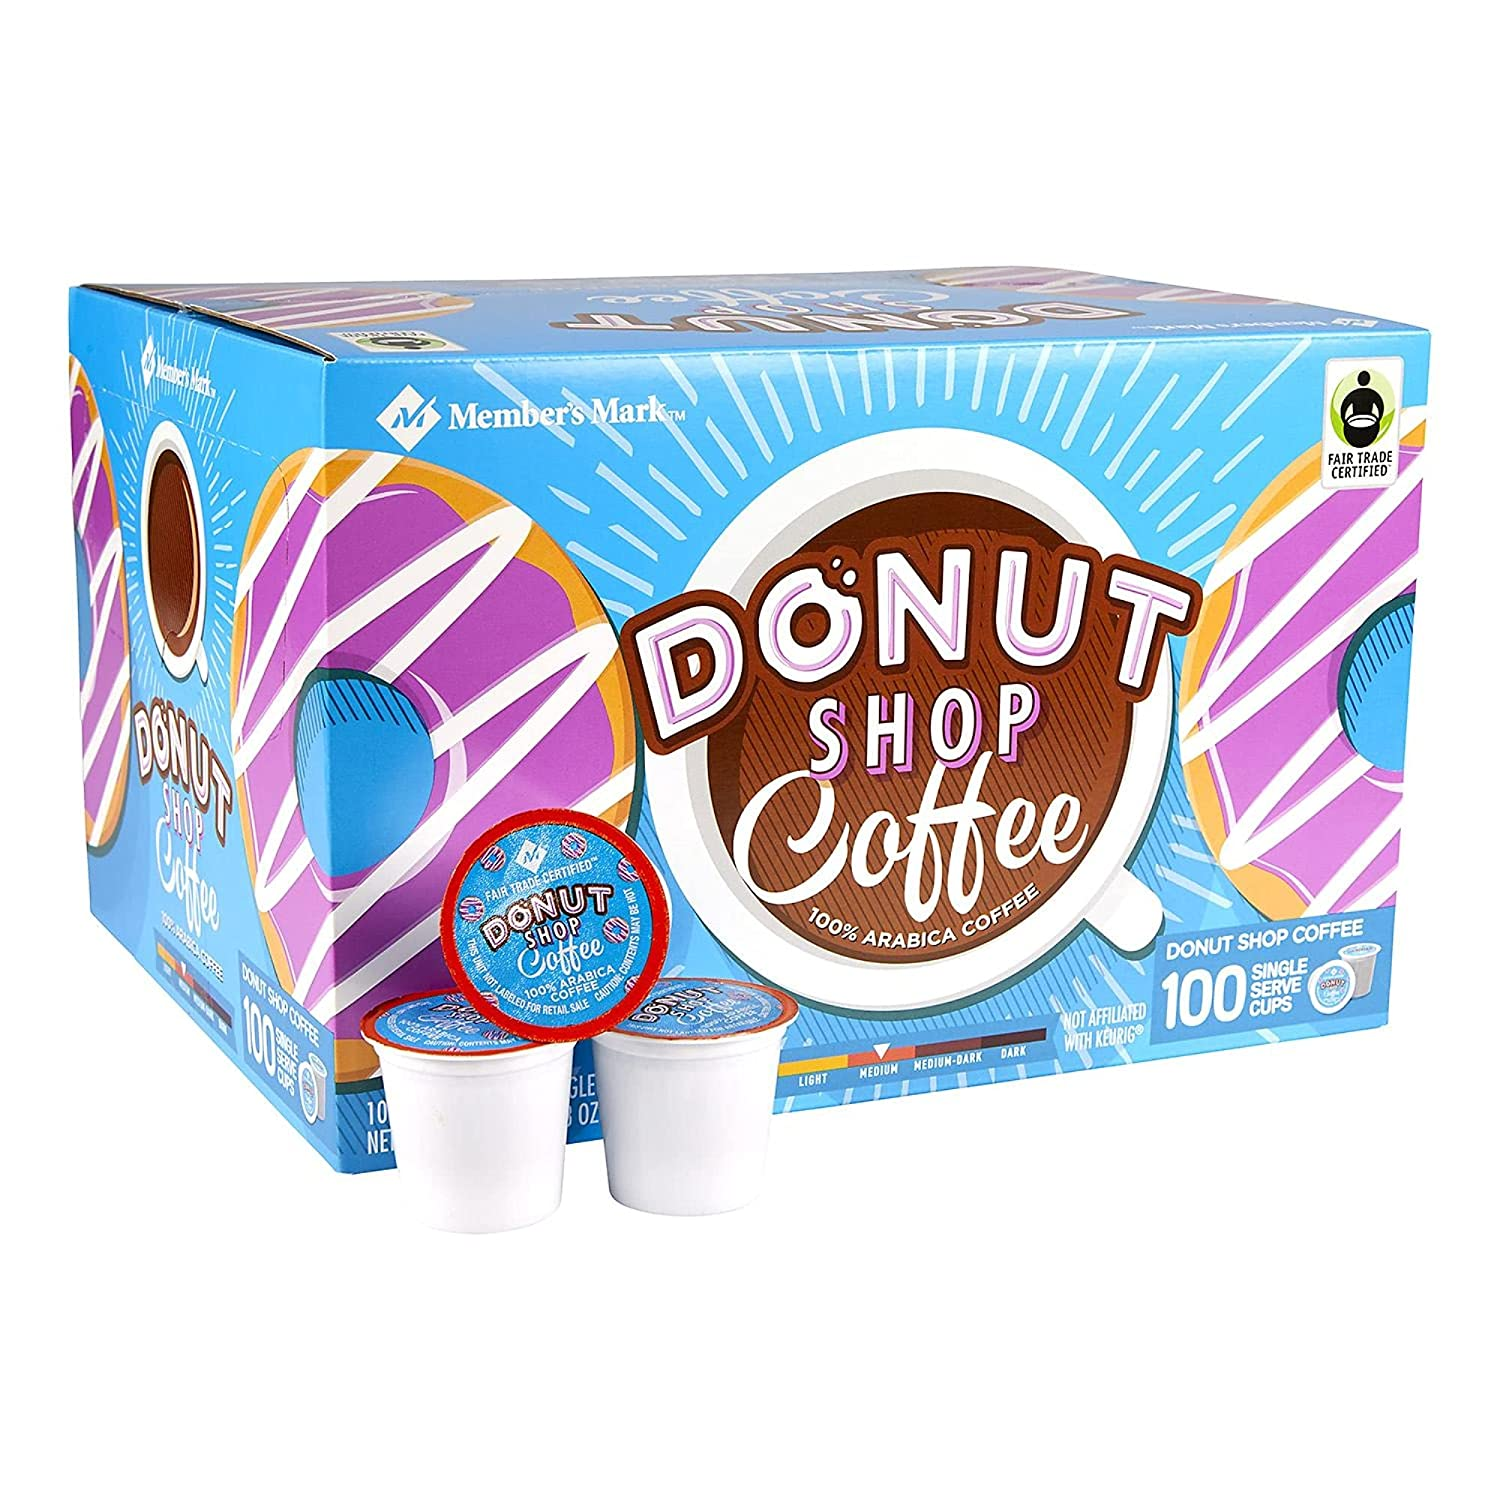 Member shopping S Mark Donut Shop New arrival Coffee Cups Whol Ct. Single 100 Serve